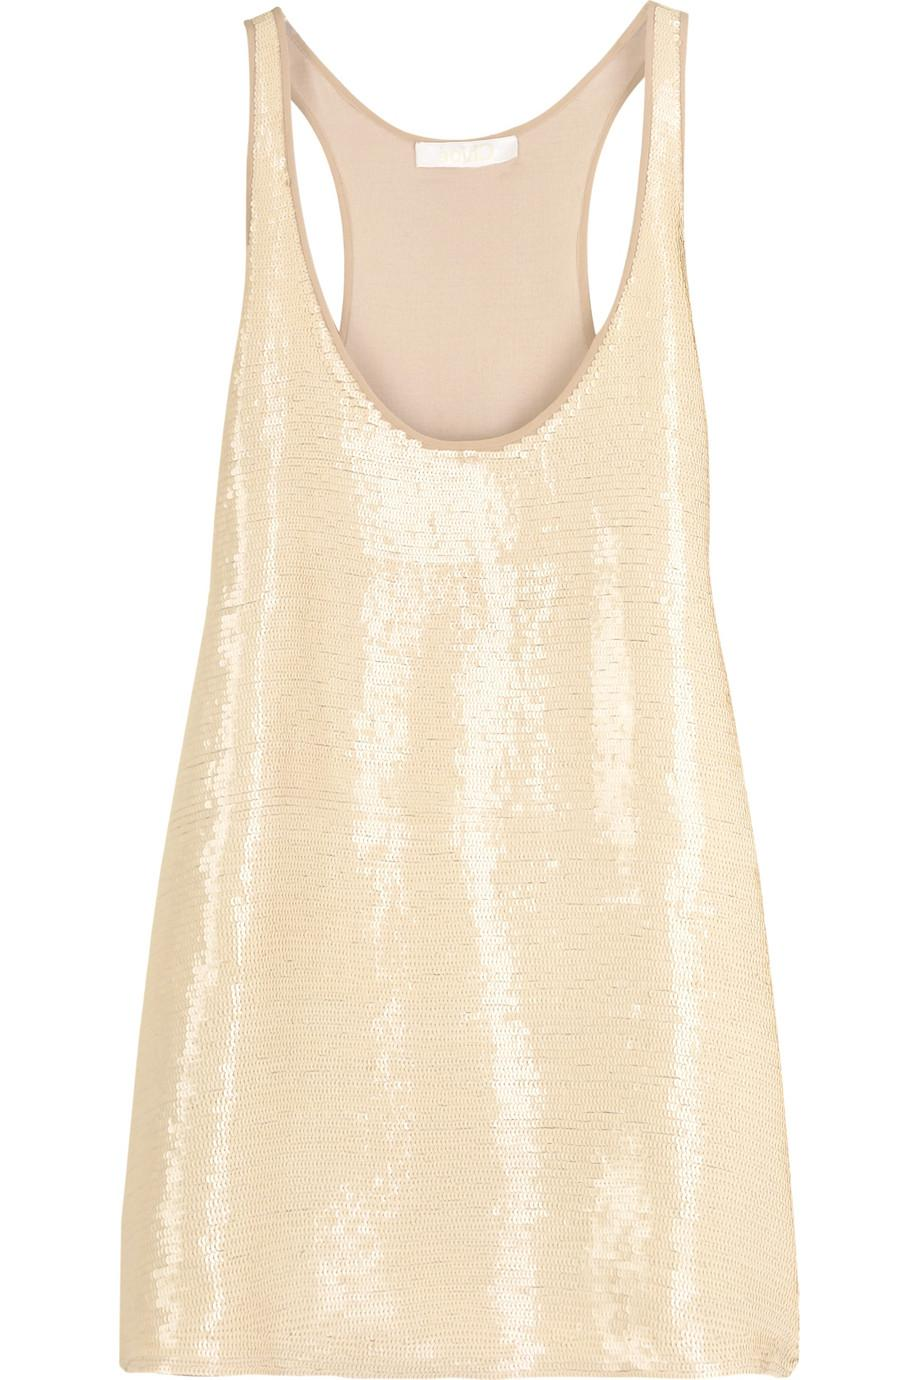 Chlo   Sequined racer back top